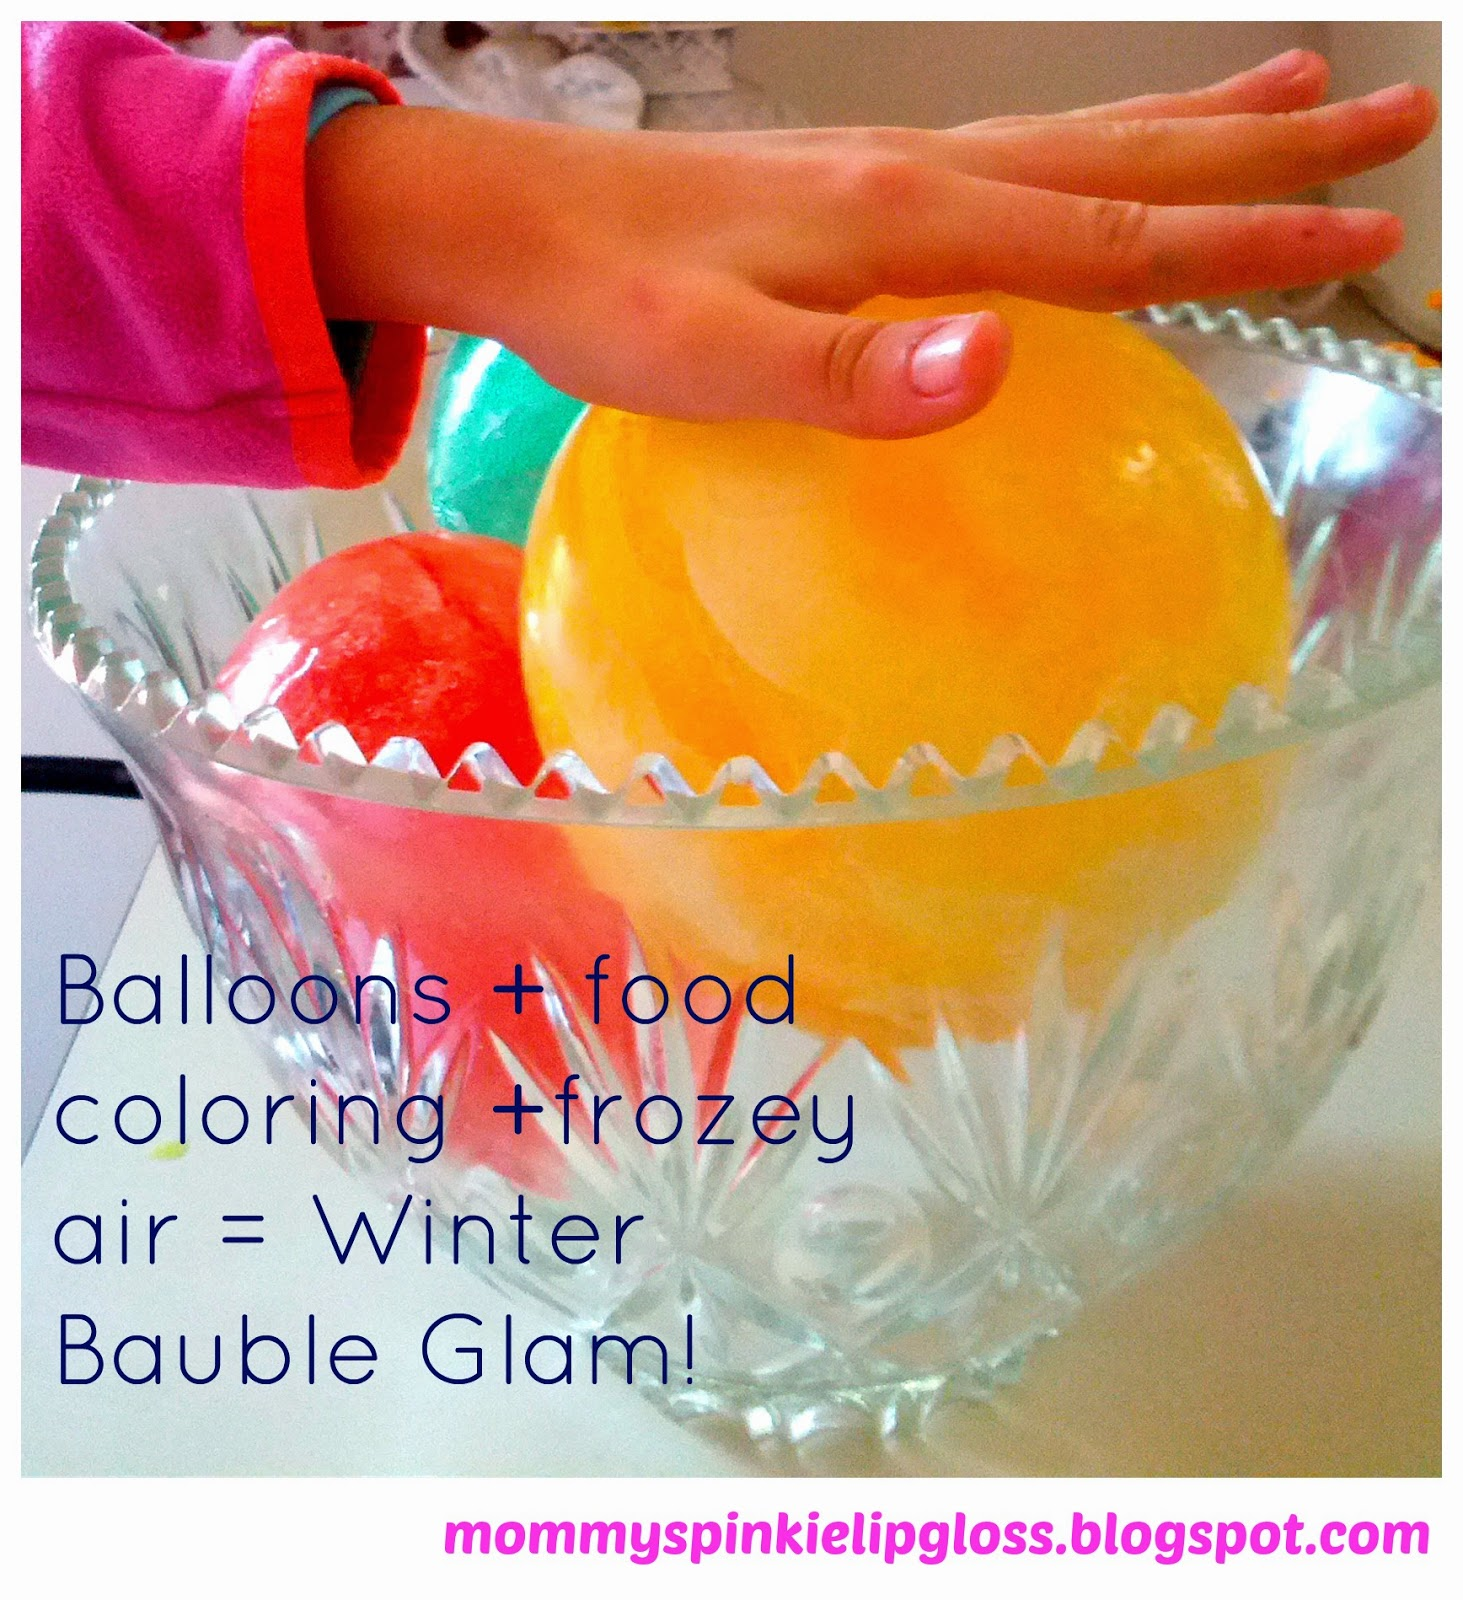 balloon crafts for winter time from MommysPinkieLipgloss.blogspot.com